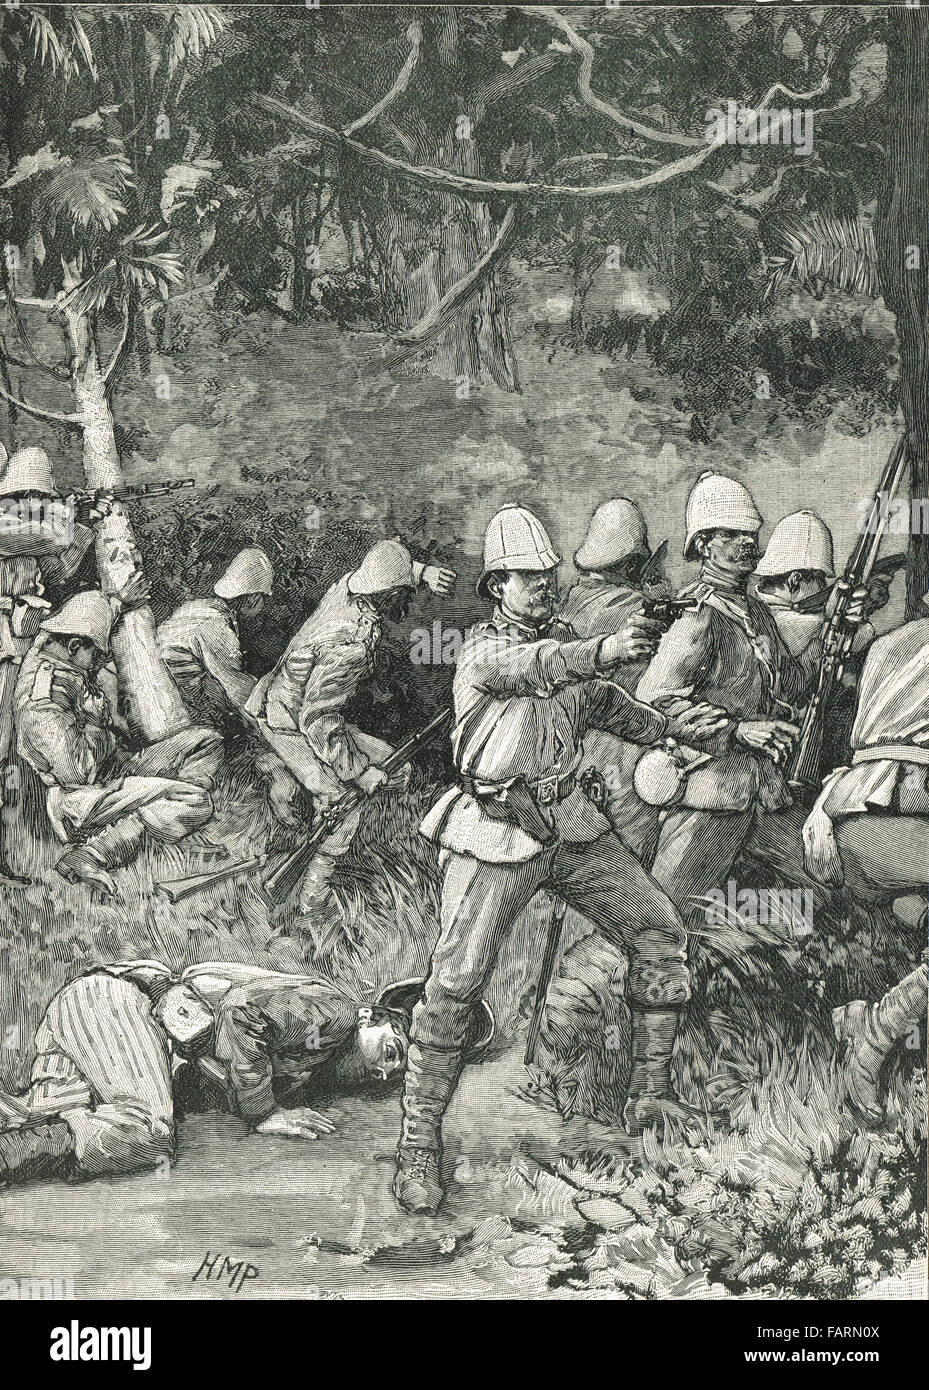 British Troops entering Coomassie (Now Kumasi in Ghana) in 1874 - Stock Image